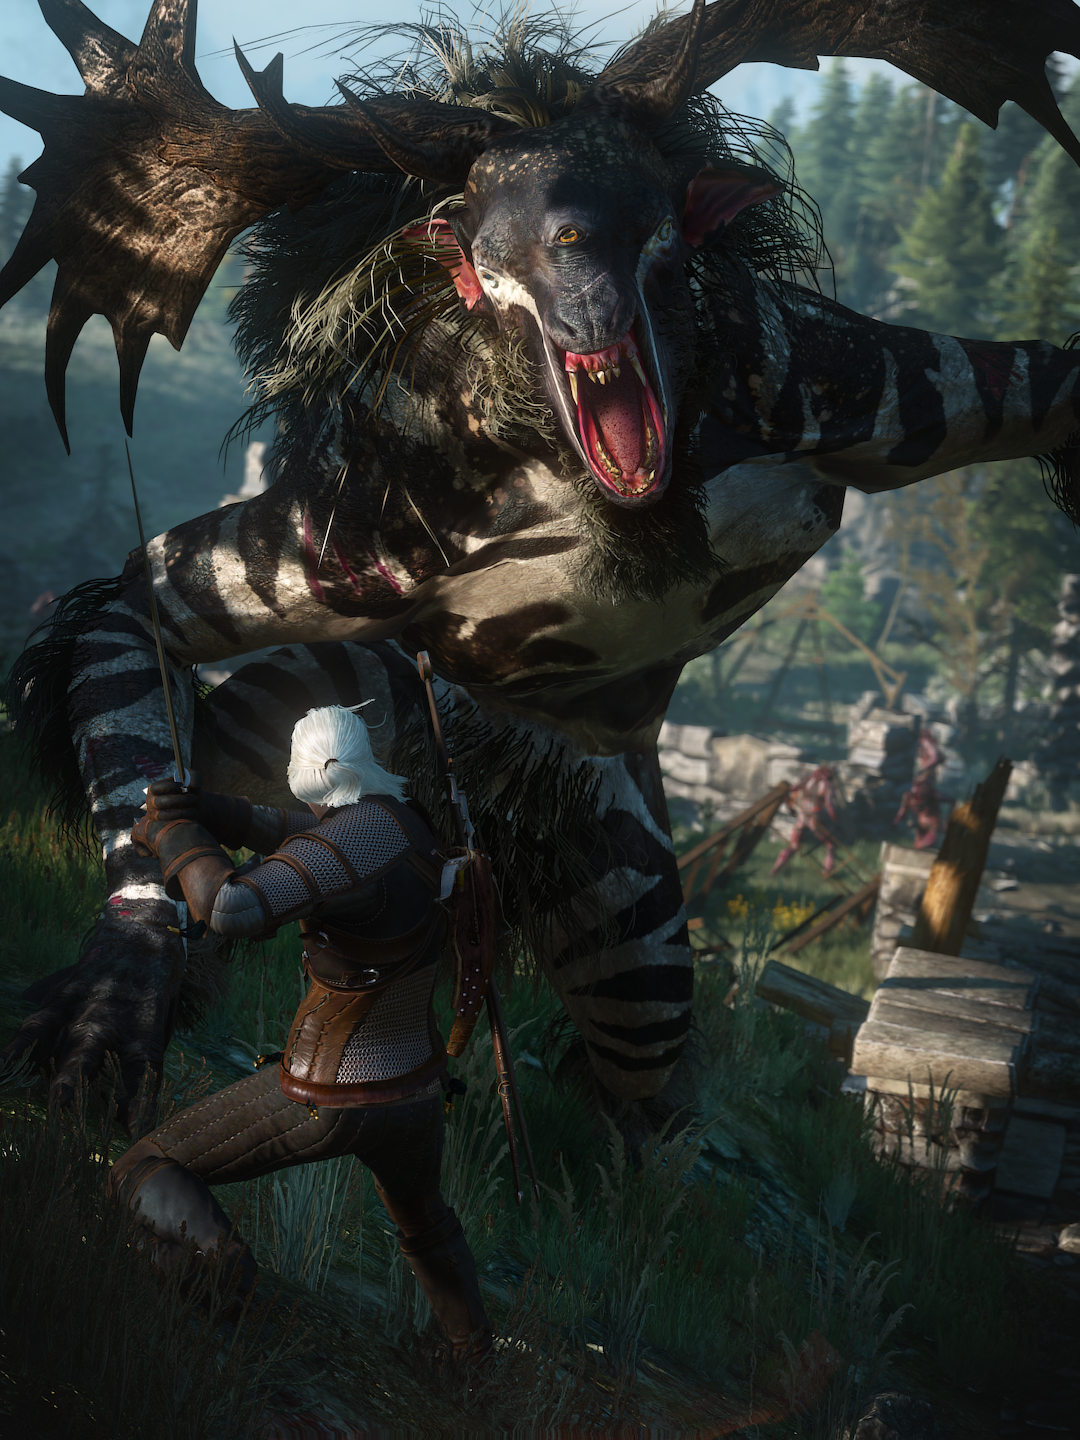 monstermash.png - Witcher 3: Wild Hunt, the